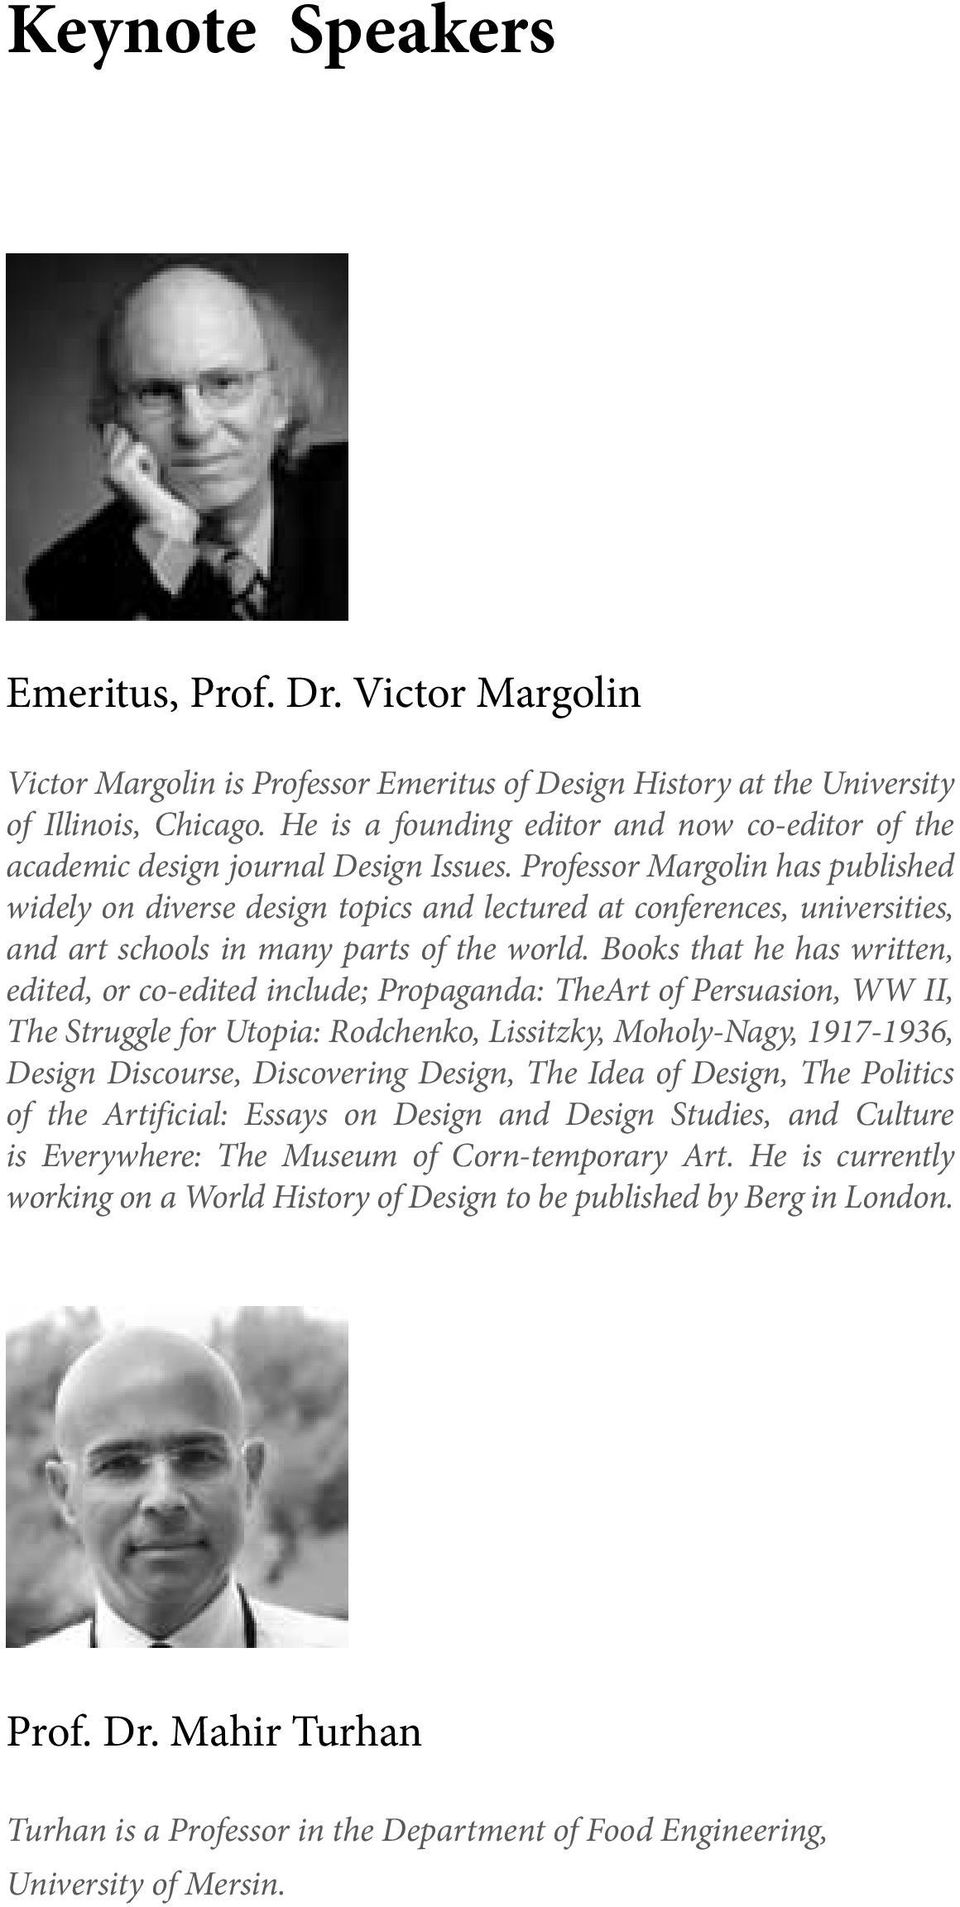 Professor Margolin has published widely on diverse design topics and lectured at conferences, universities, and art schools in many parts of the world.